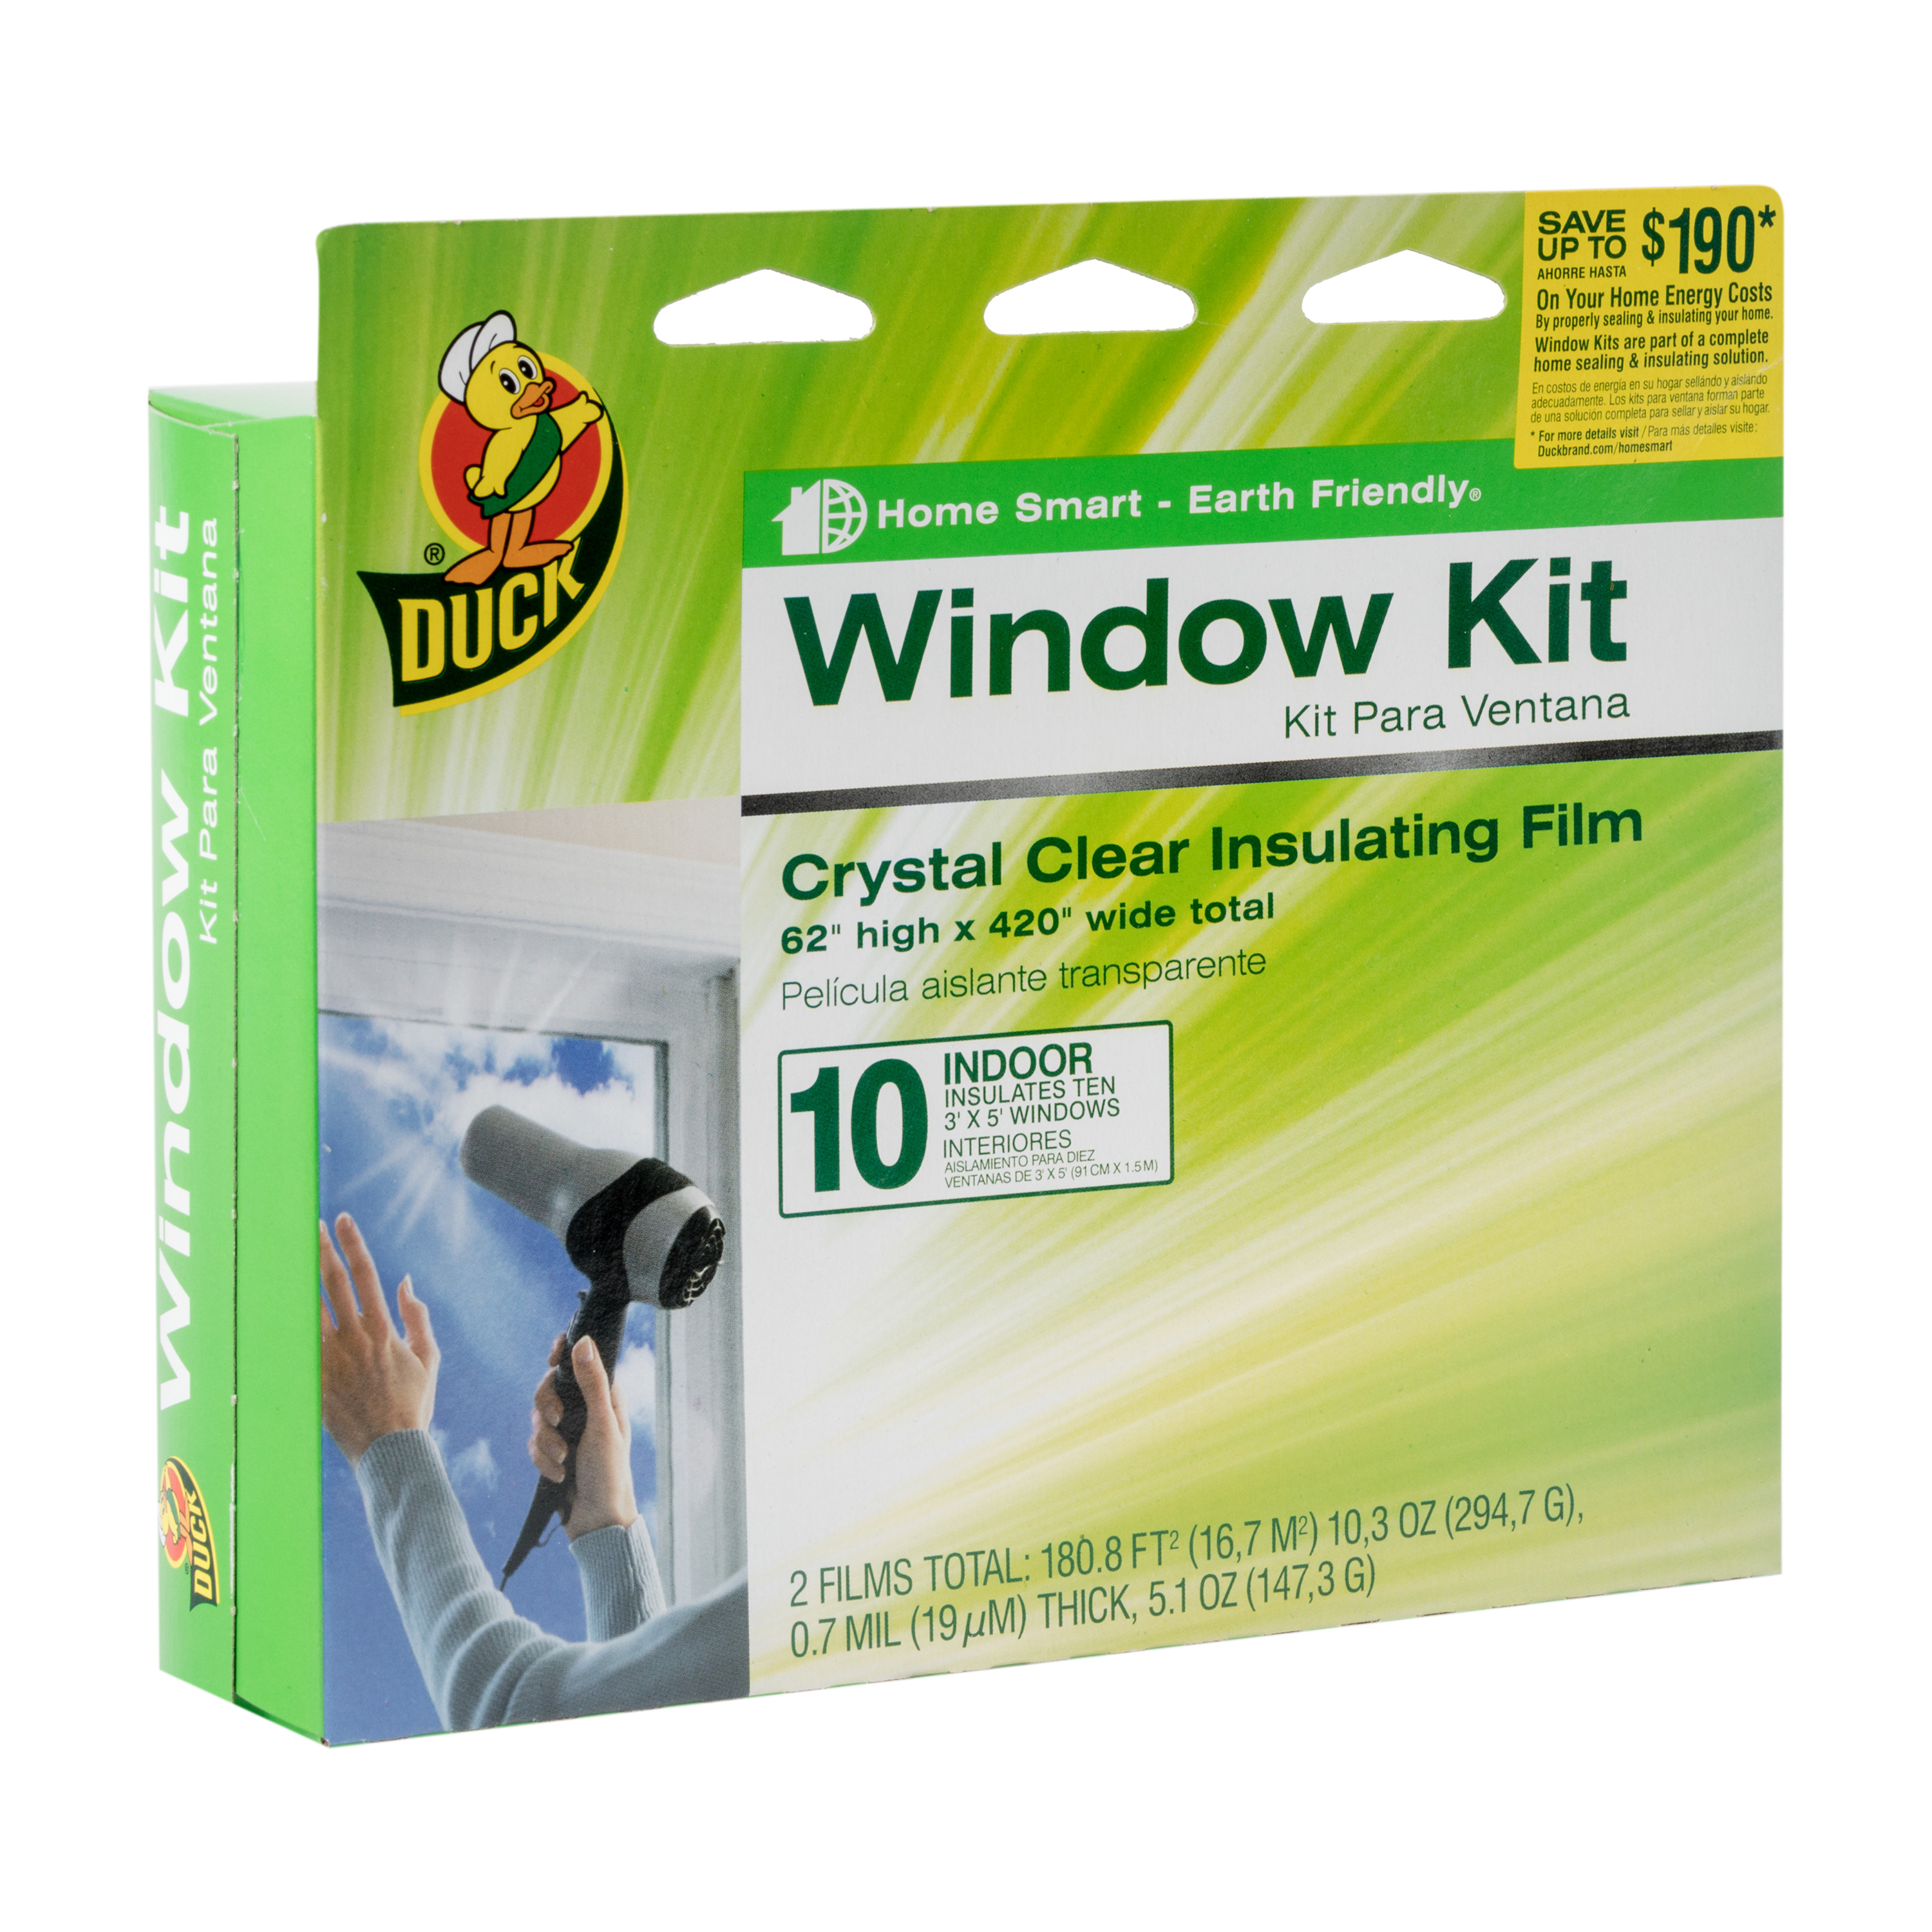 "Duck Indoor Window Insulation Kit, Insulates 10 Windows, 62"" x 420"" Film"